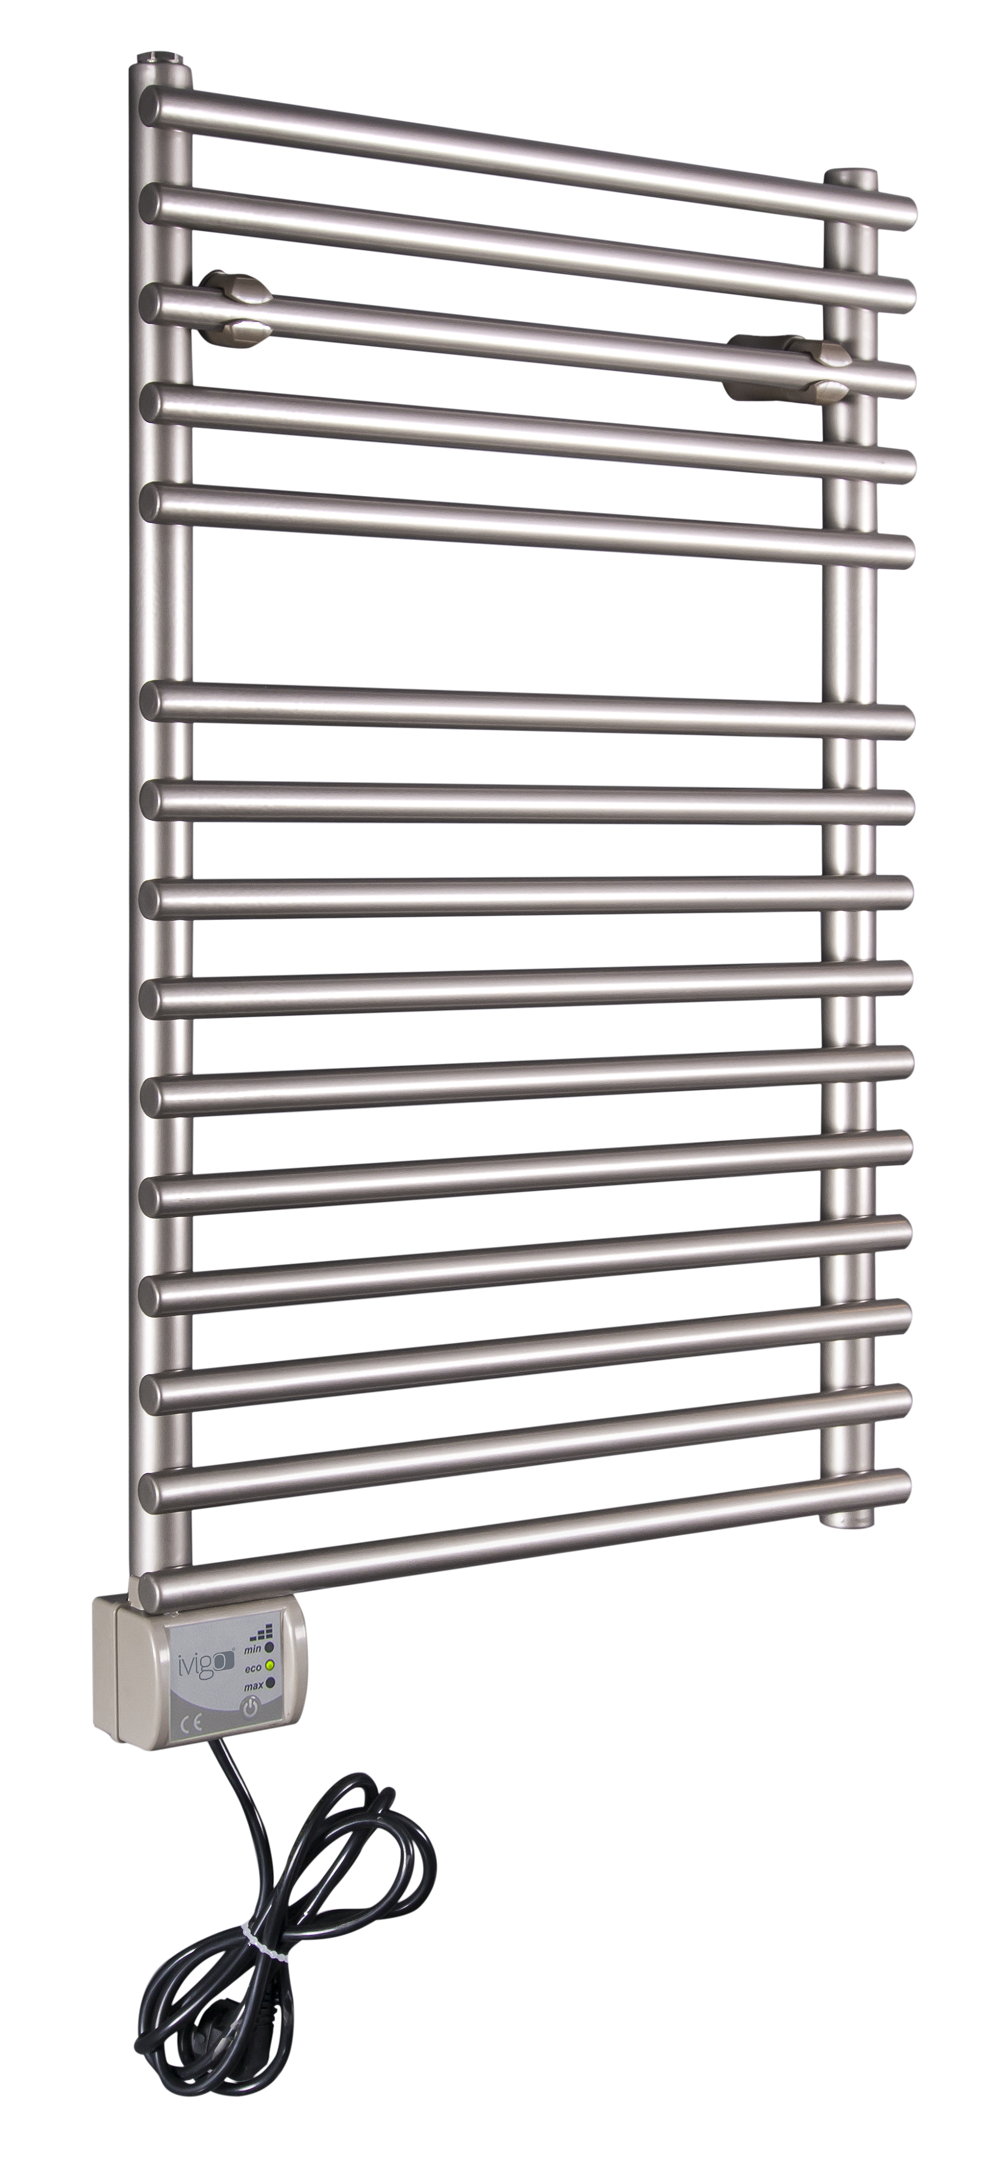 Radiator (calorifer) baie portprosop electric iVigo EHR 5019, 450 W, 500x1000 mm, inox fornello imagine